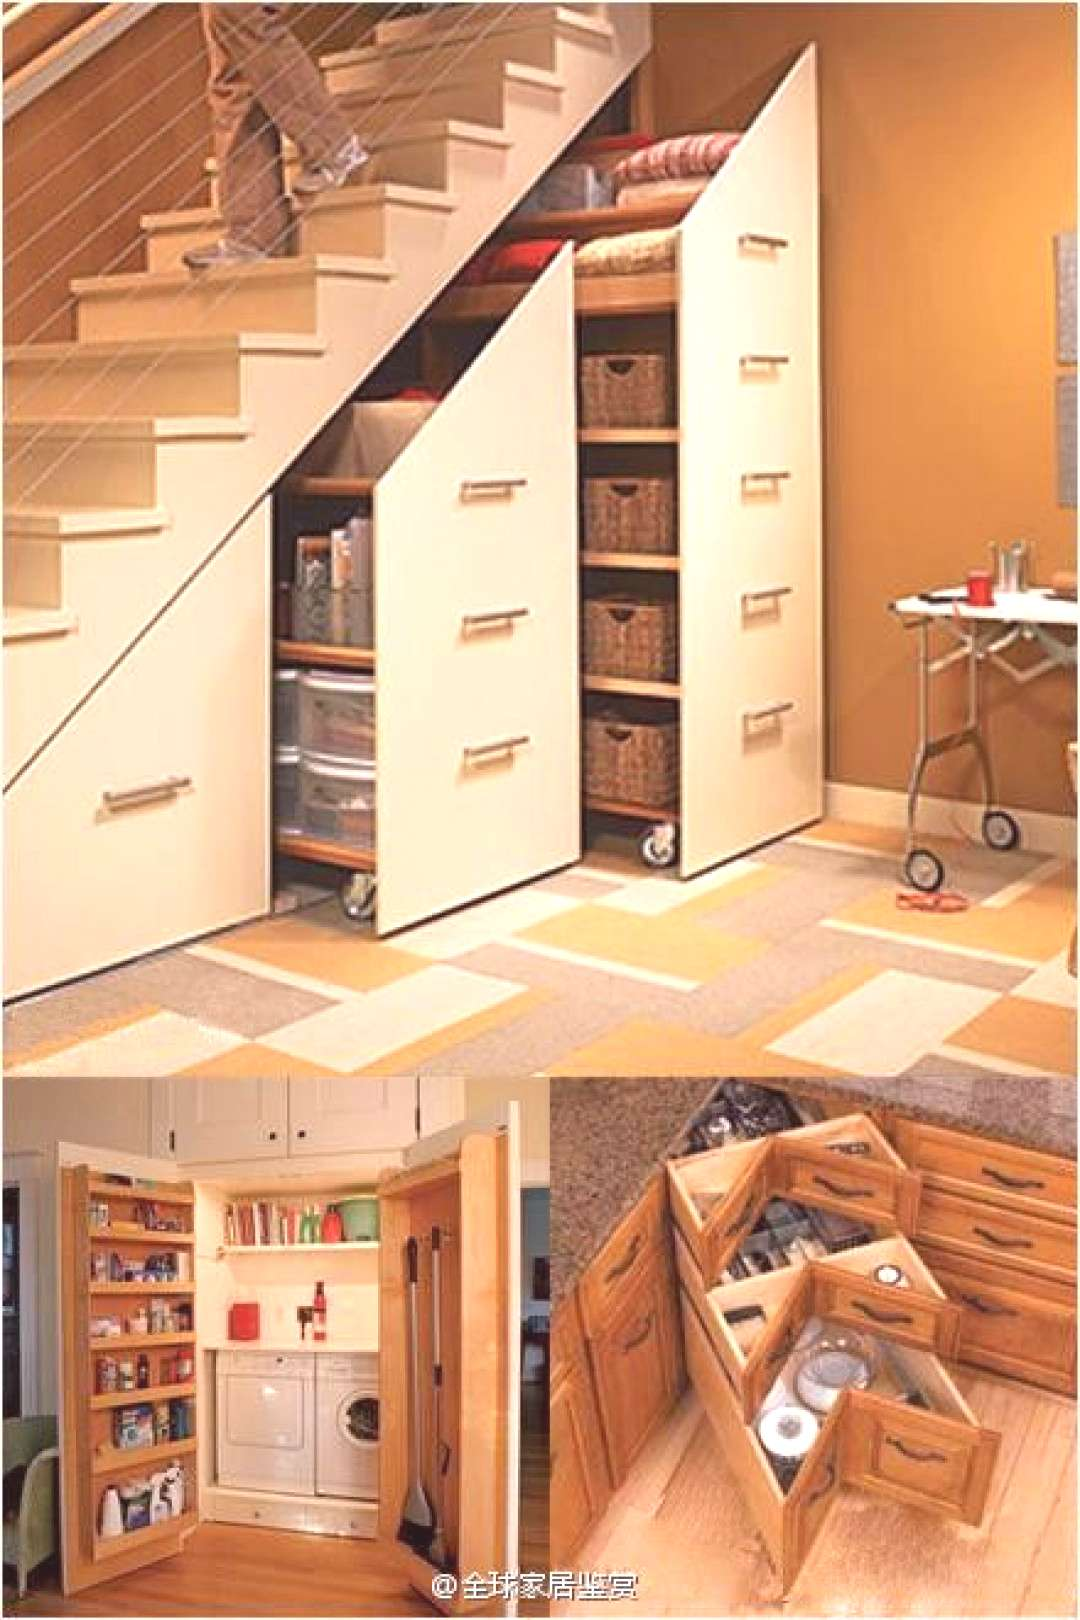 Under-Stair Storage Cabinets - I've seen this before on a home improvement show, and think it is